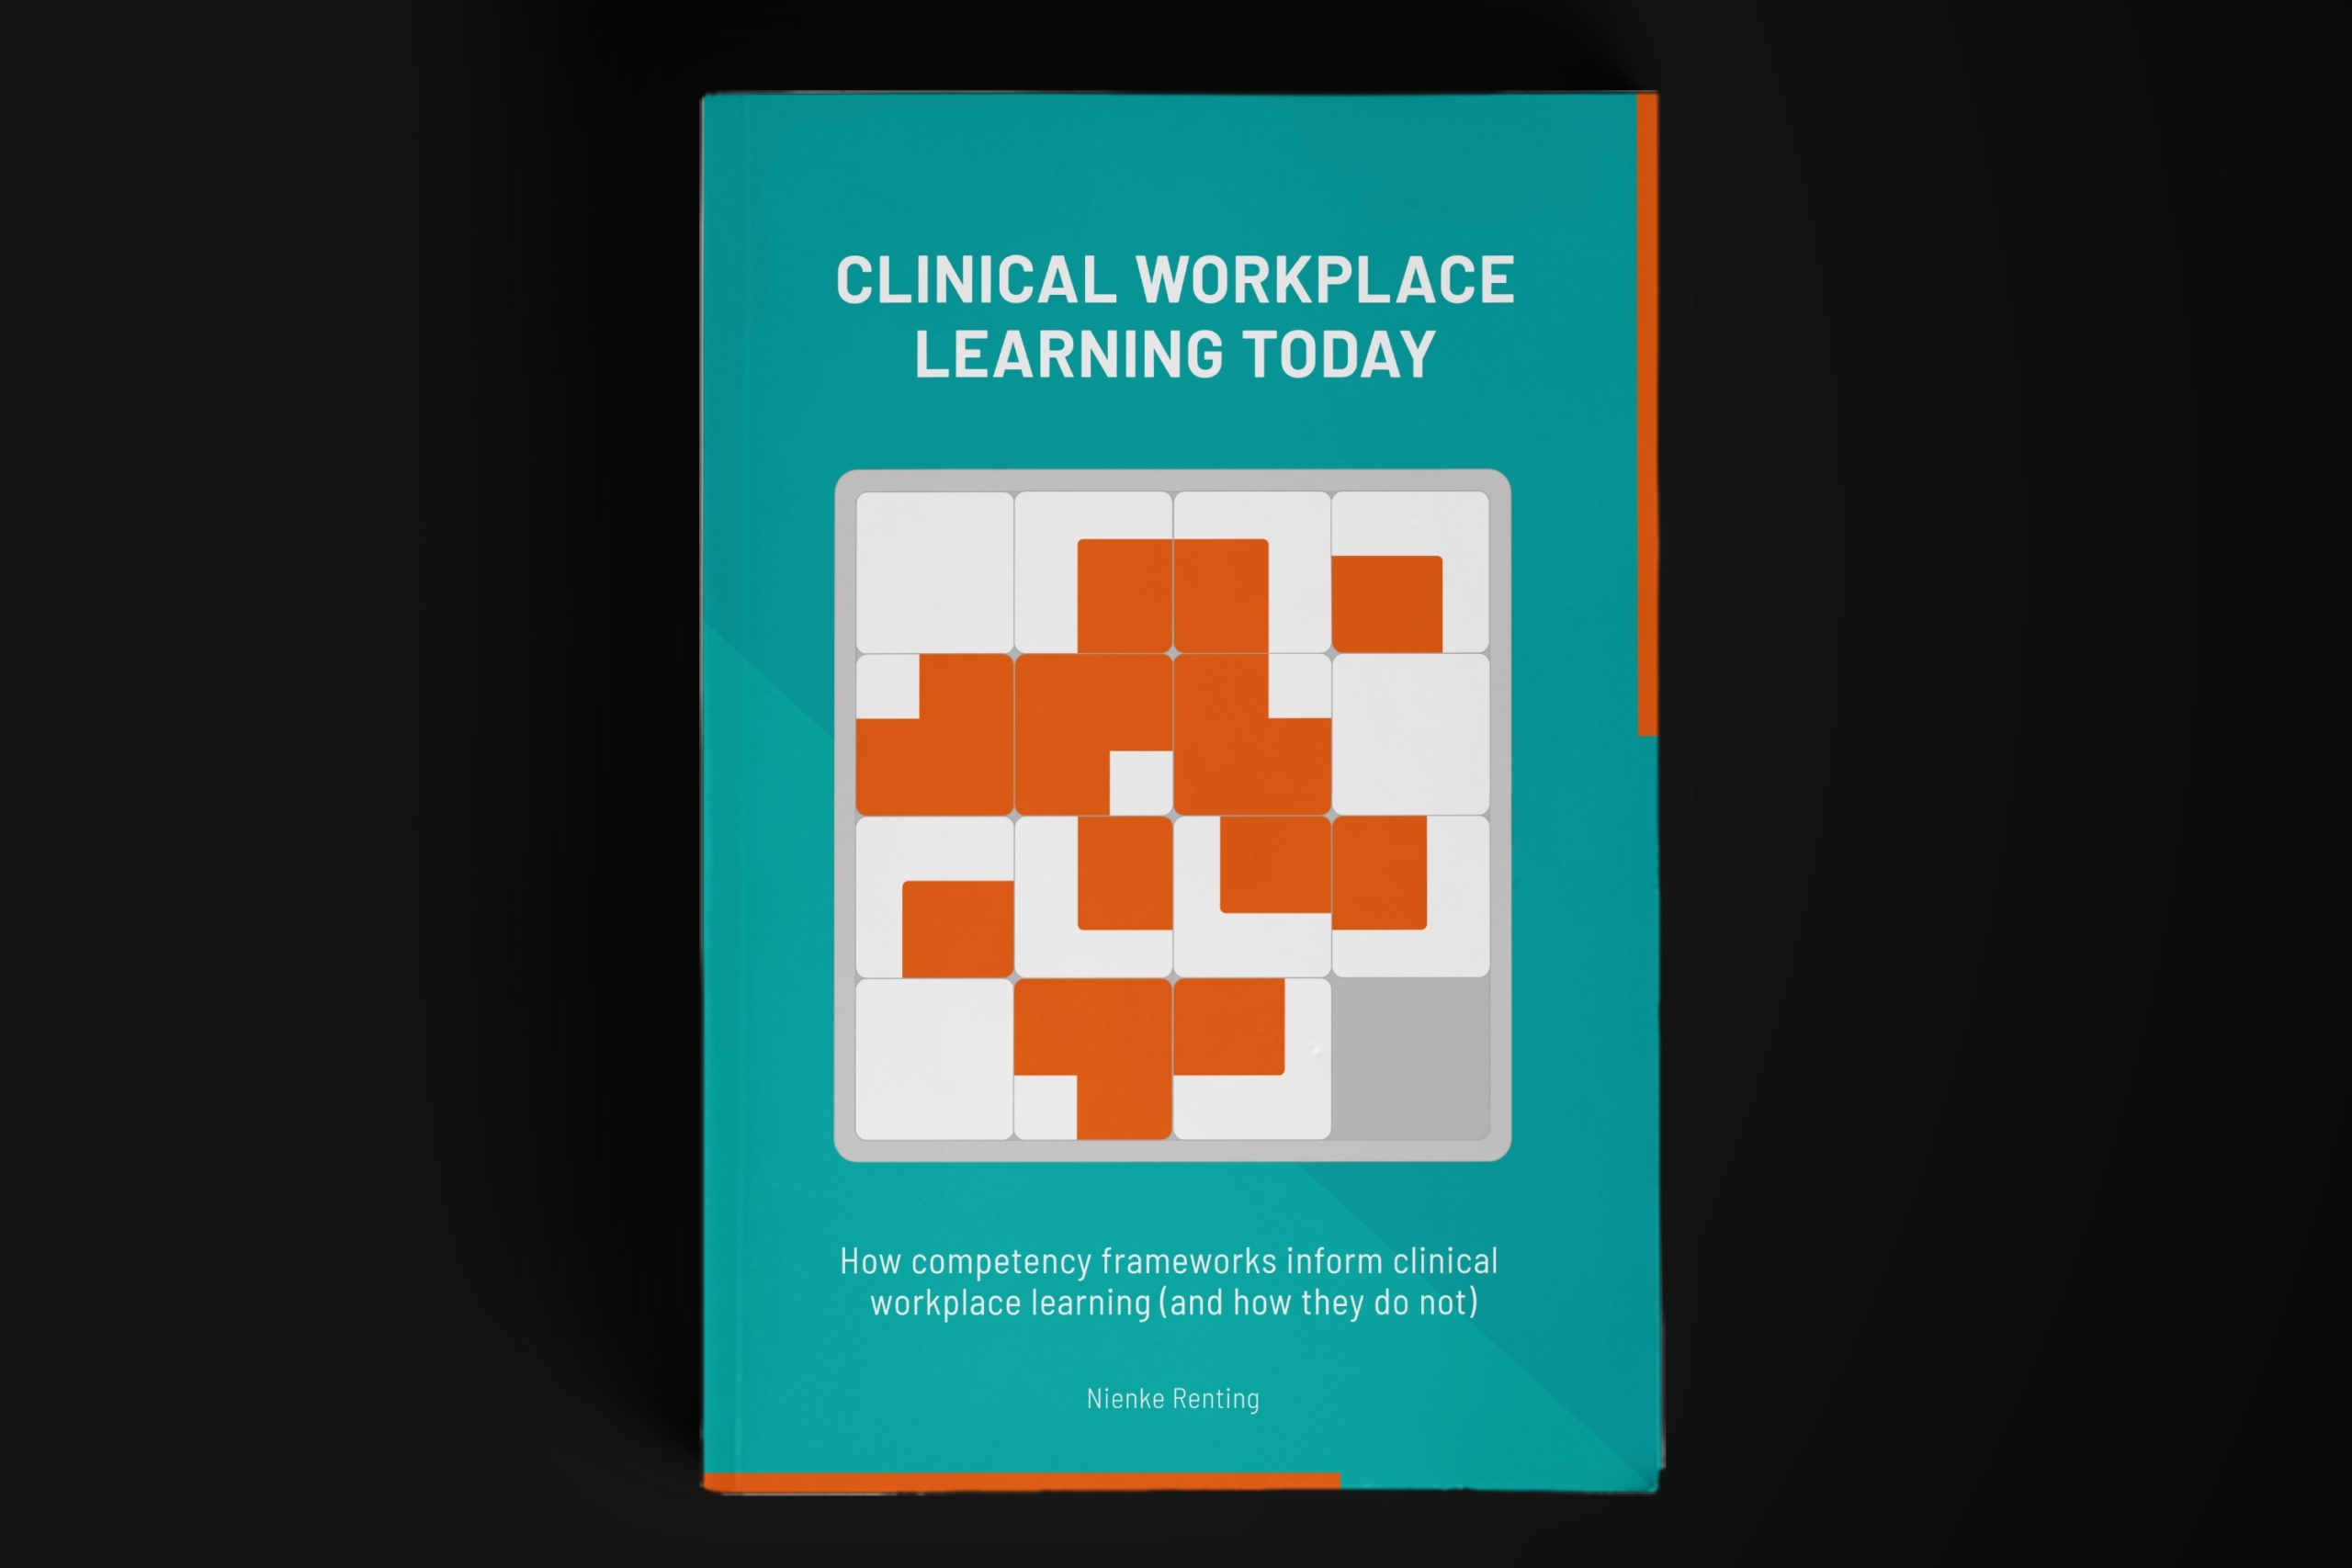 Fenna Schaap Clinical workplace learning today